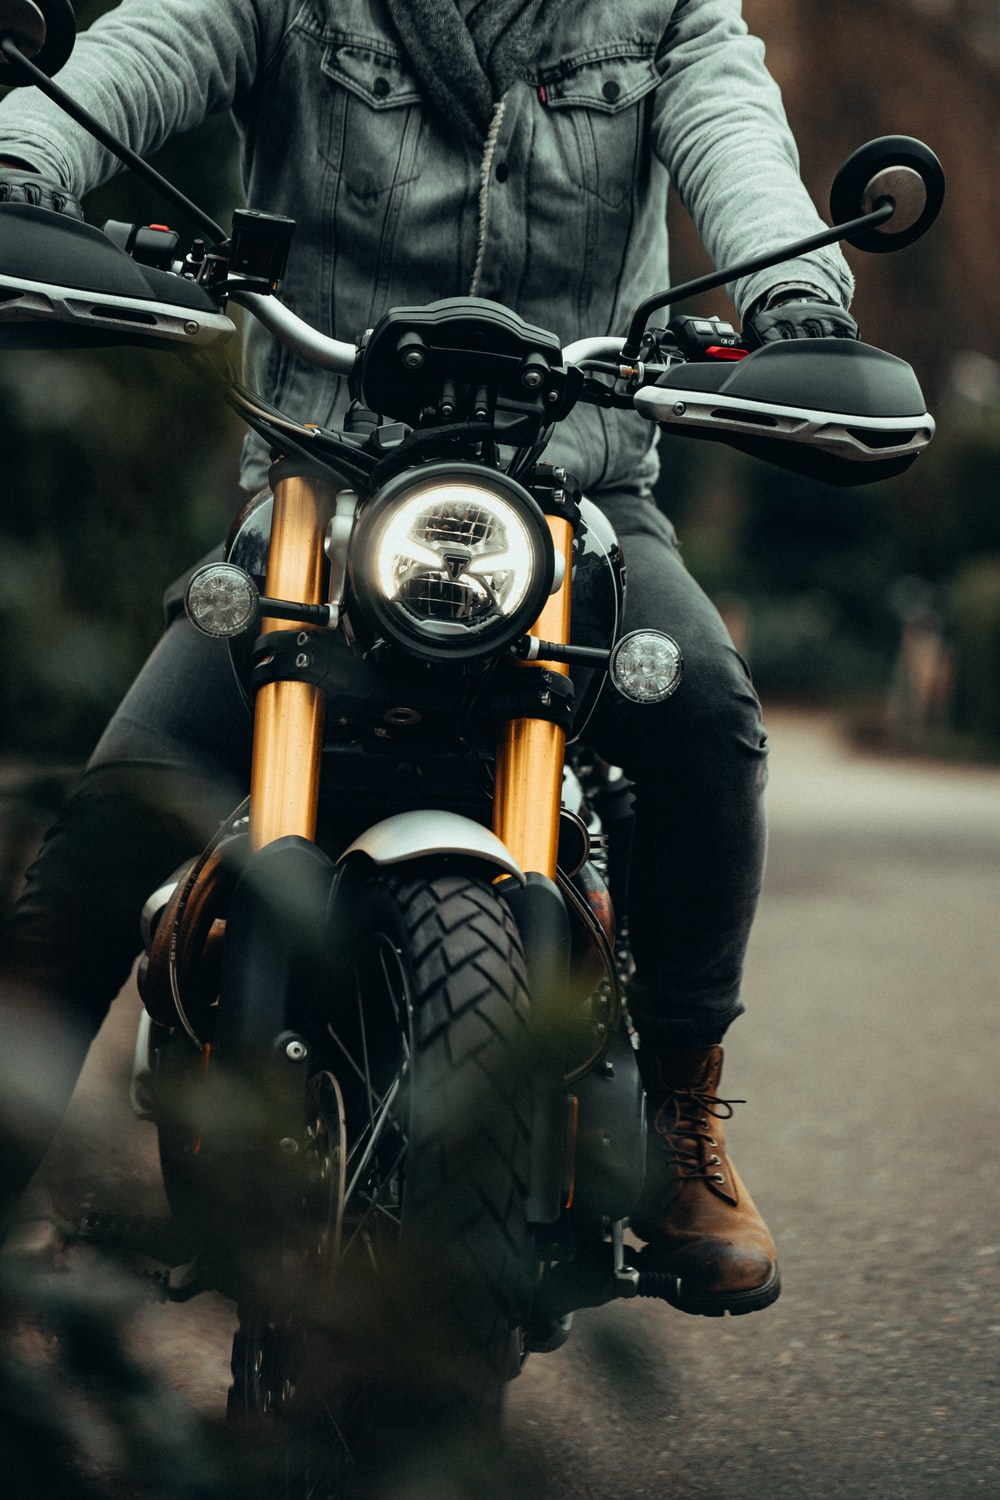 person in black leather jacket riding on black motorcycle